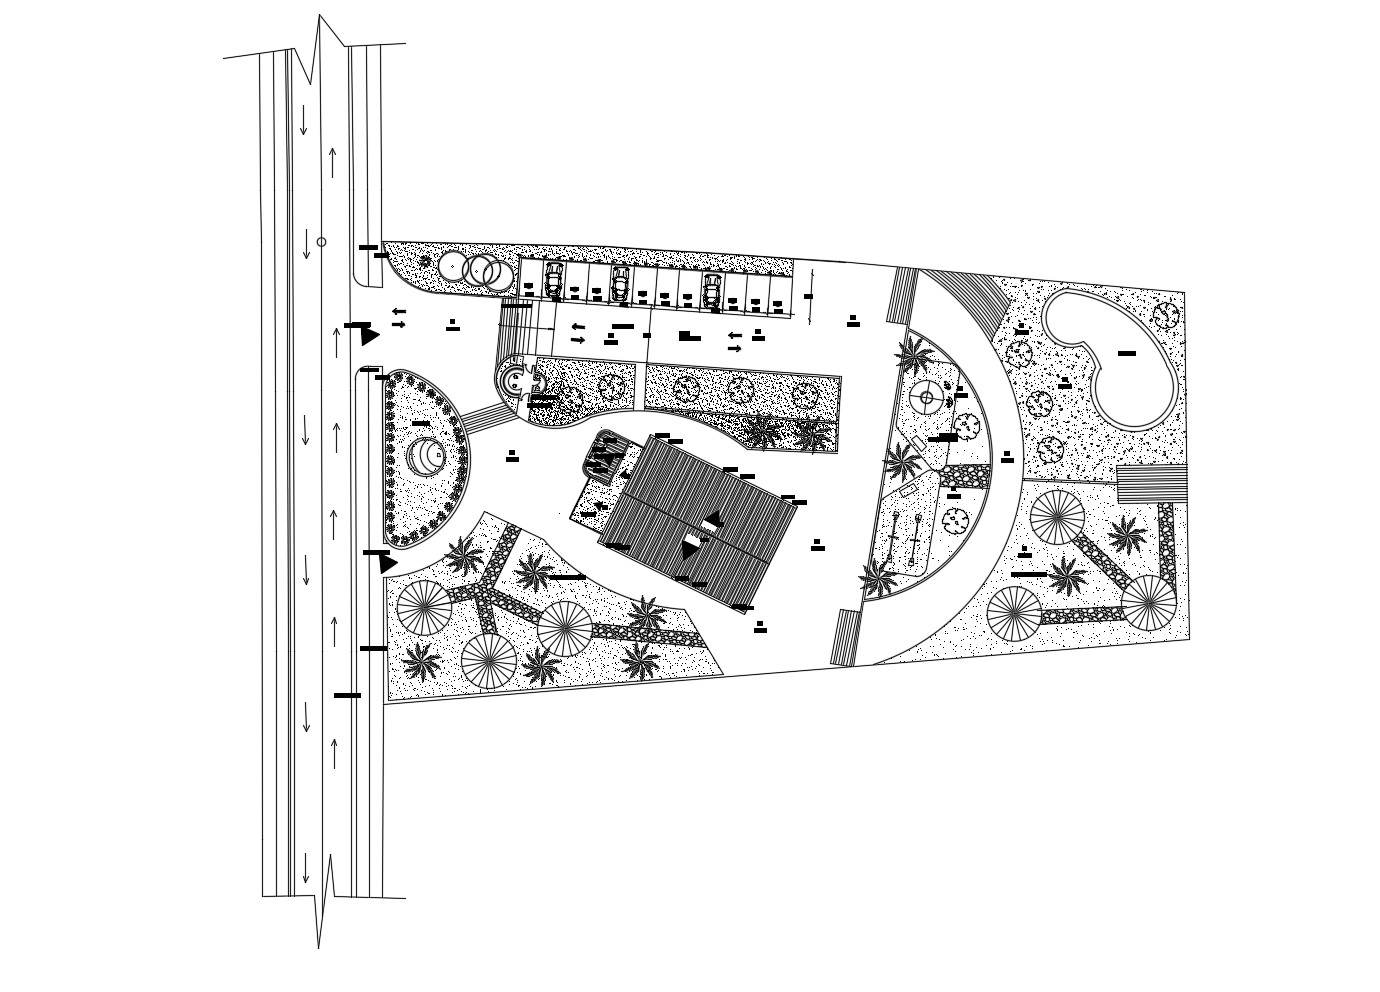 Site plan of residential building with detail dimension in dwg file